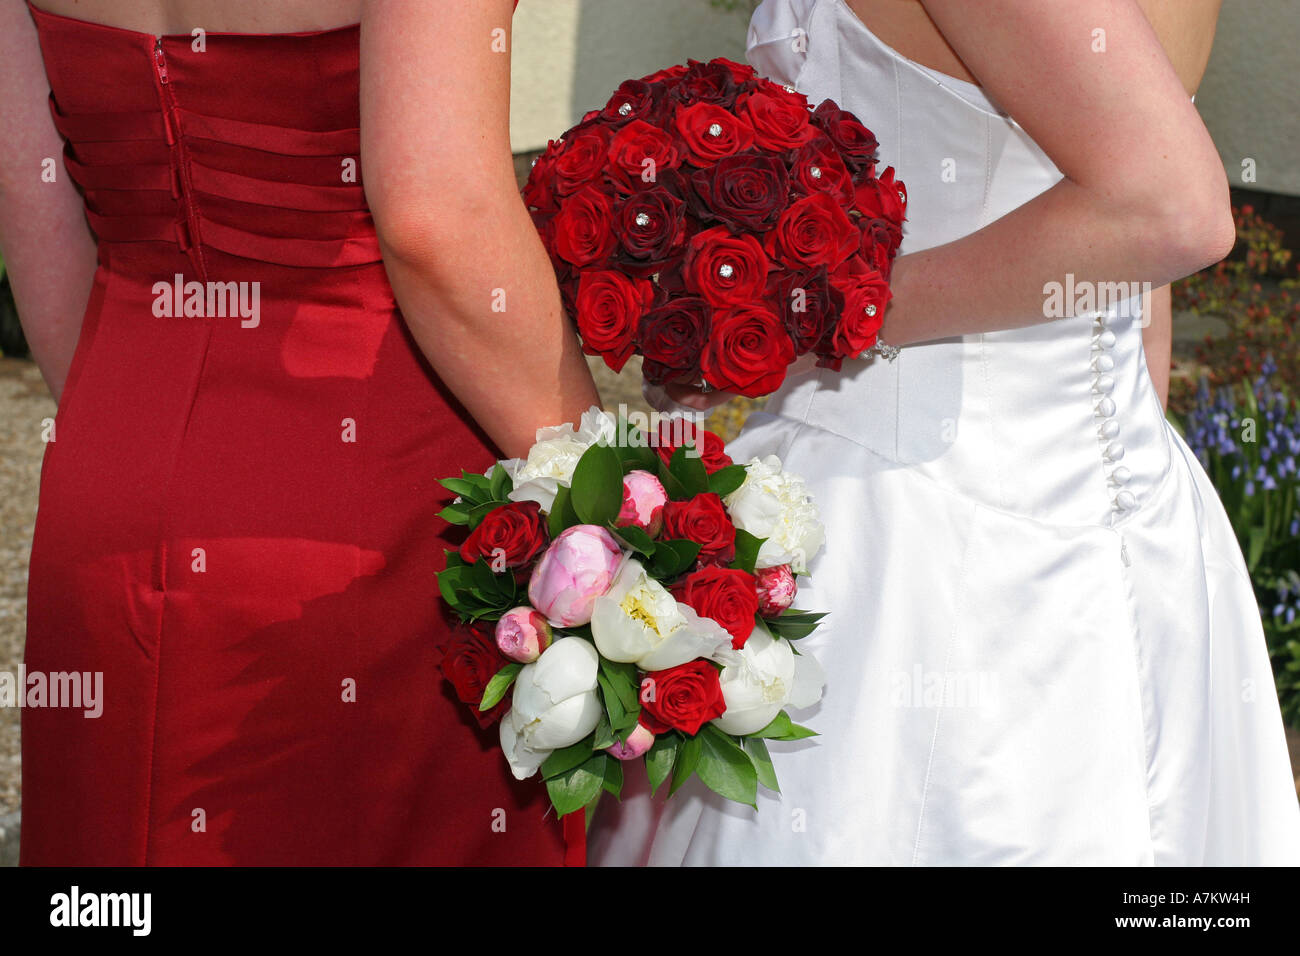 A Bride In White Wedding Dress Holds Red Rose Flower Bouquet On Top Of Bridesmaids Colourful Flowers Day UK